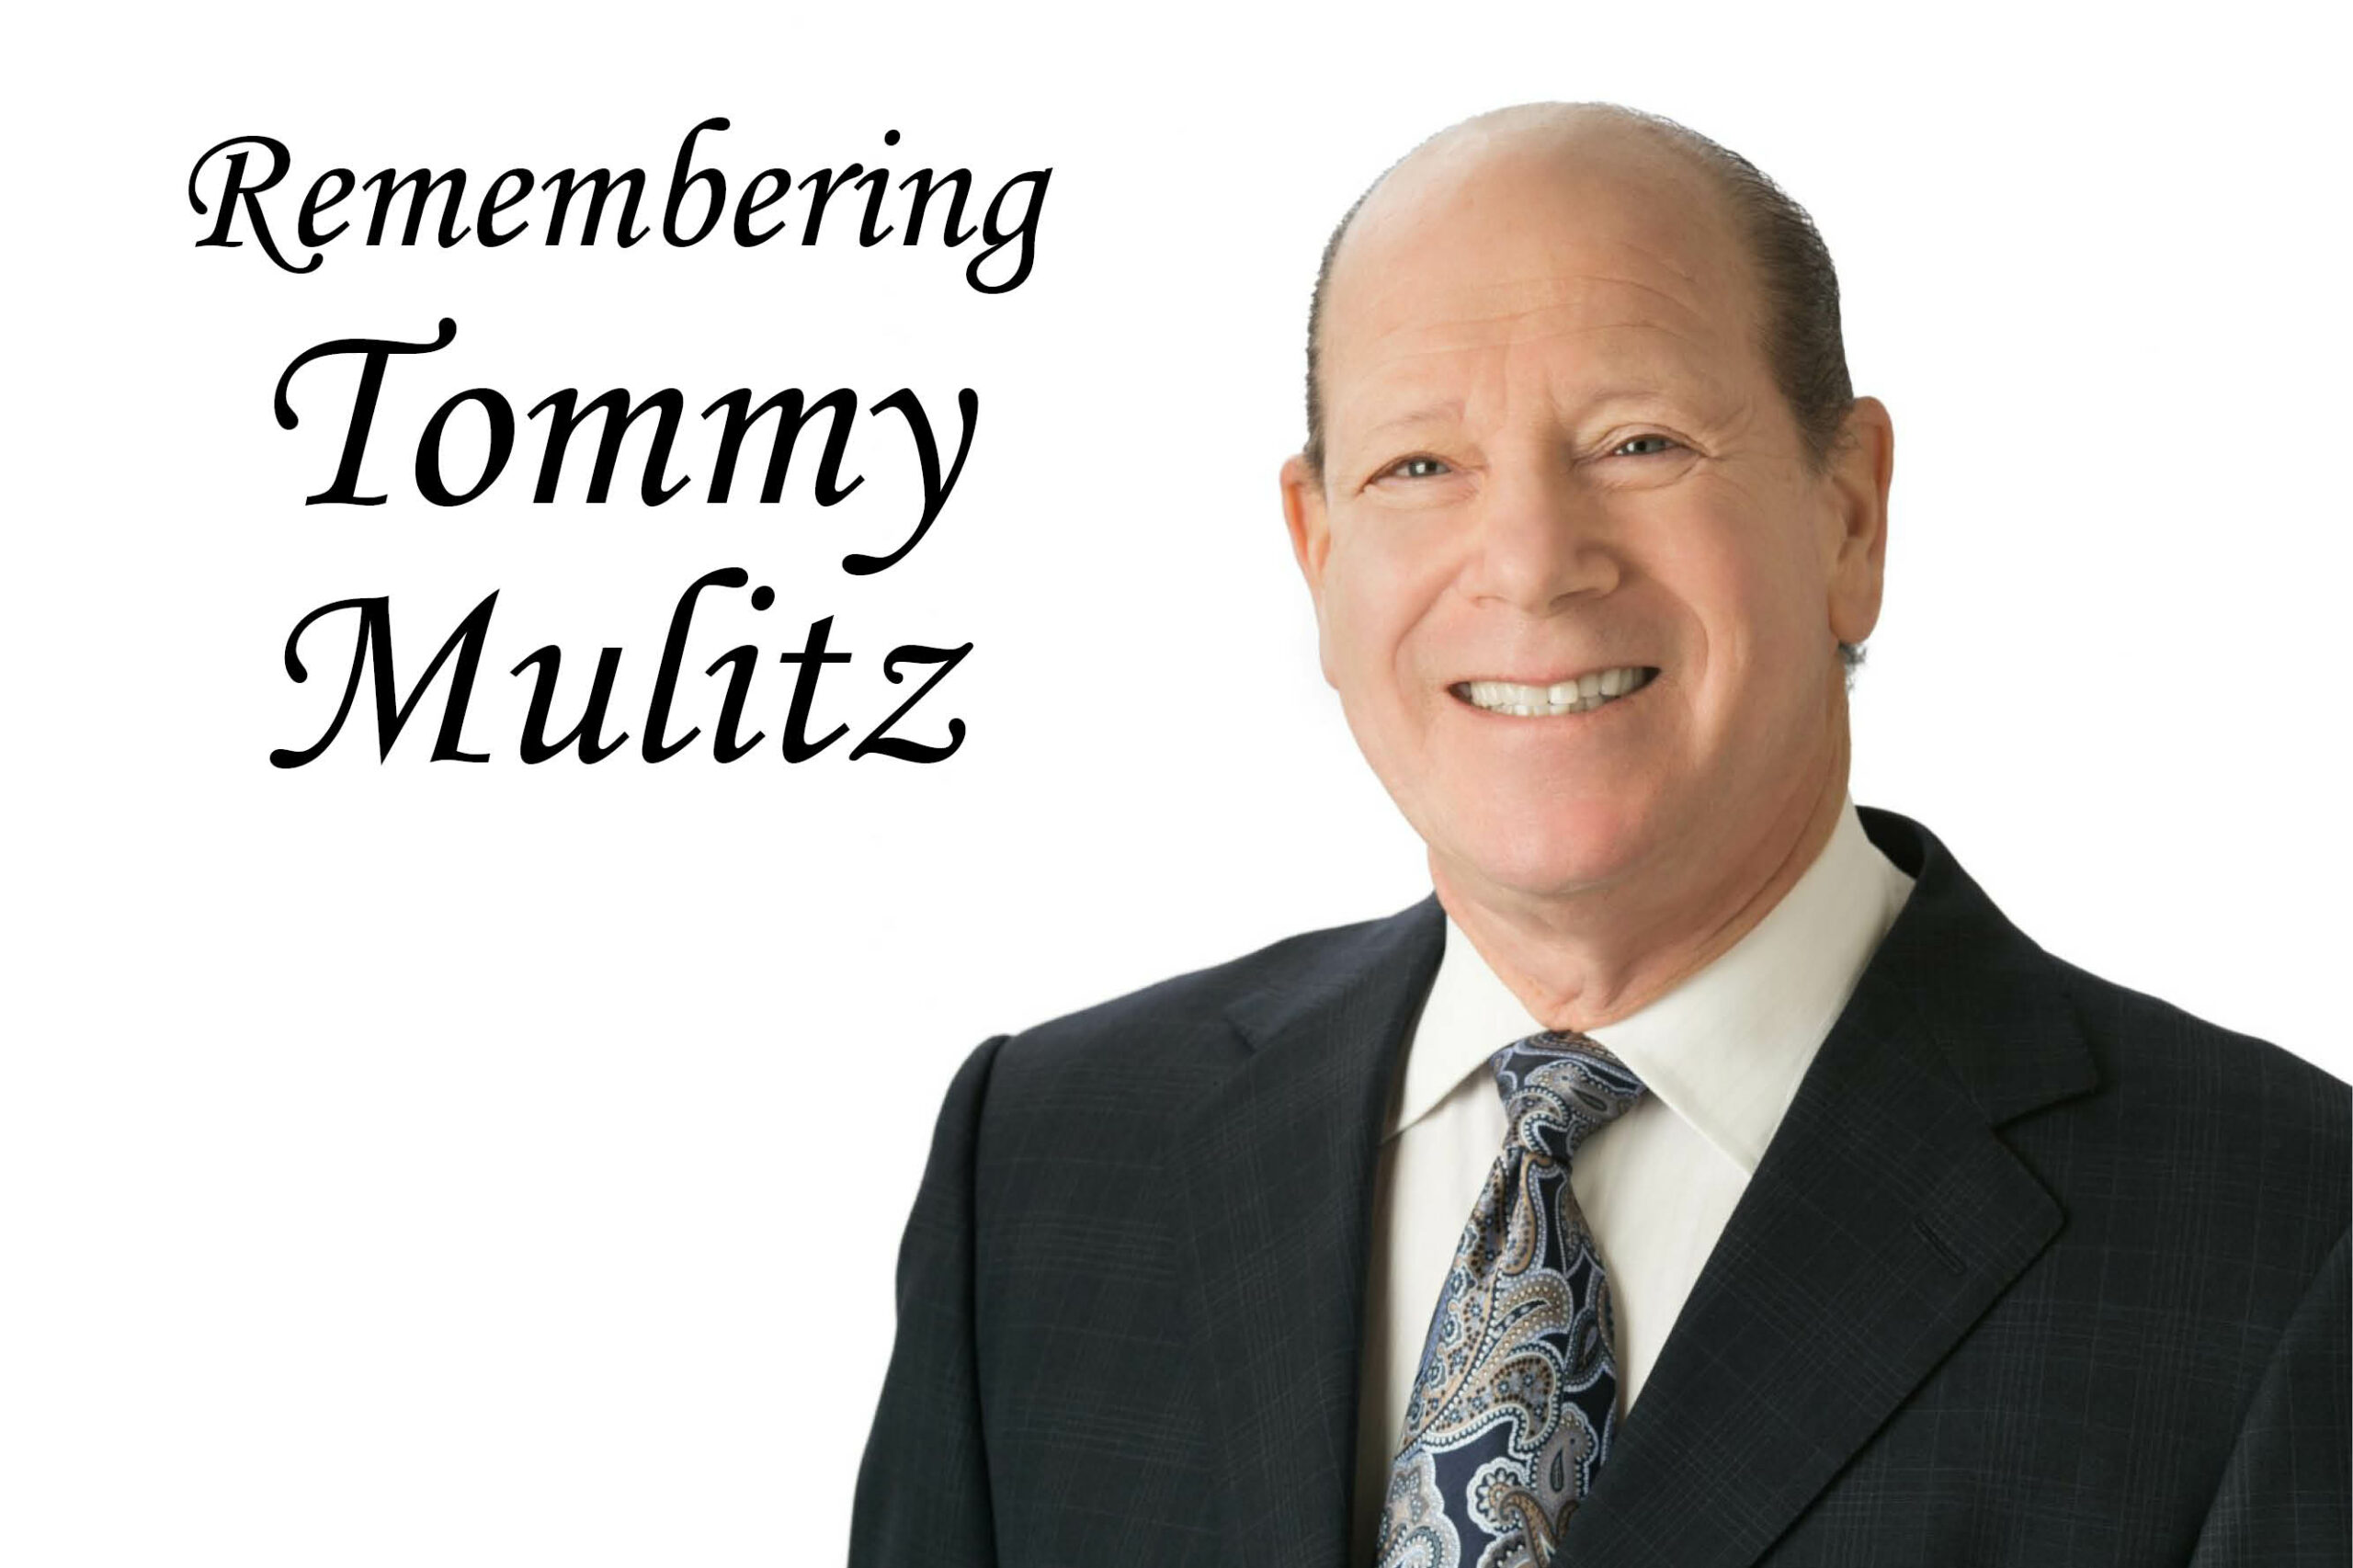 The Foundation Remembers Tommy Mulitz